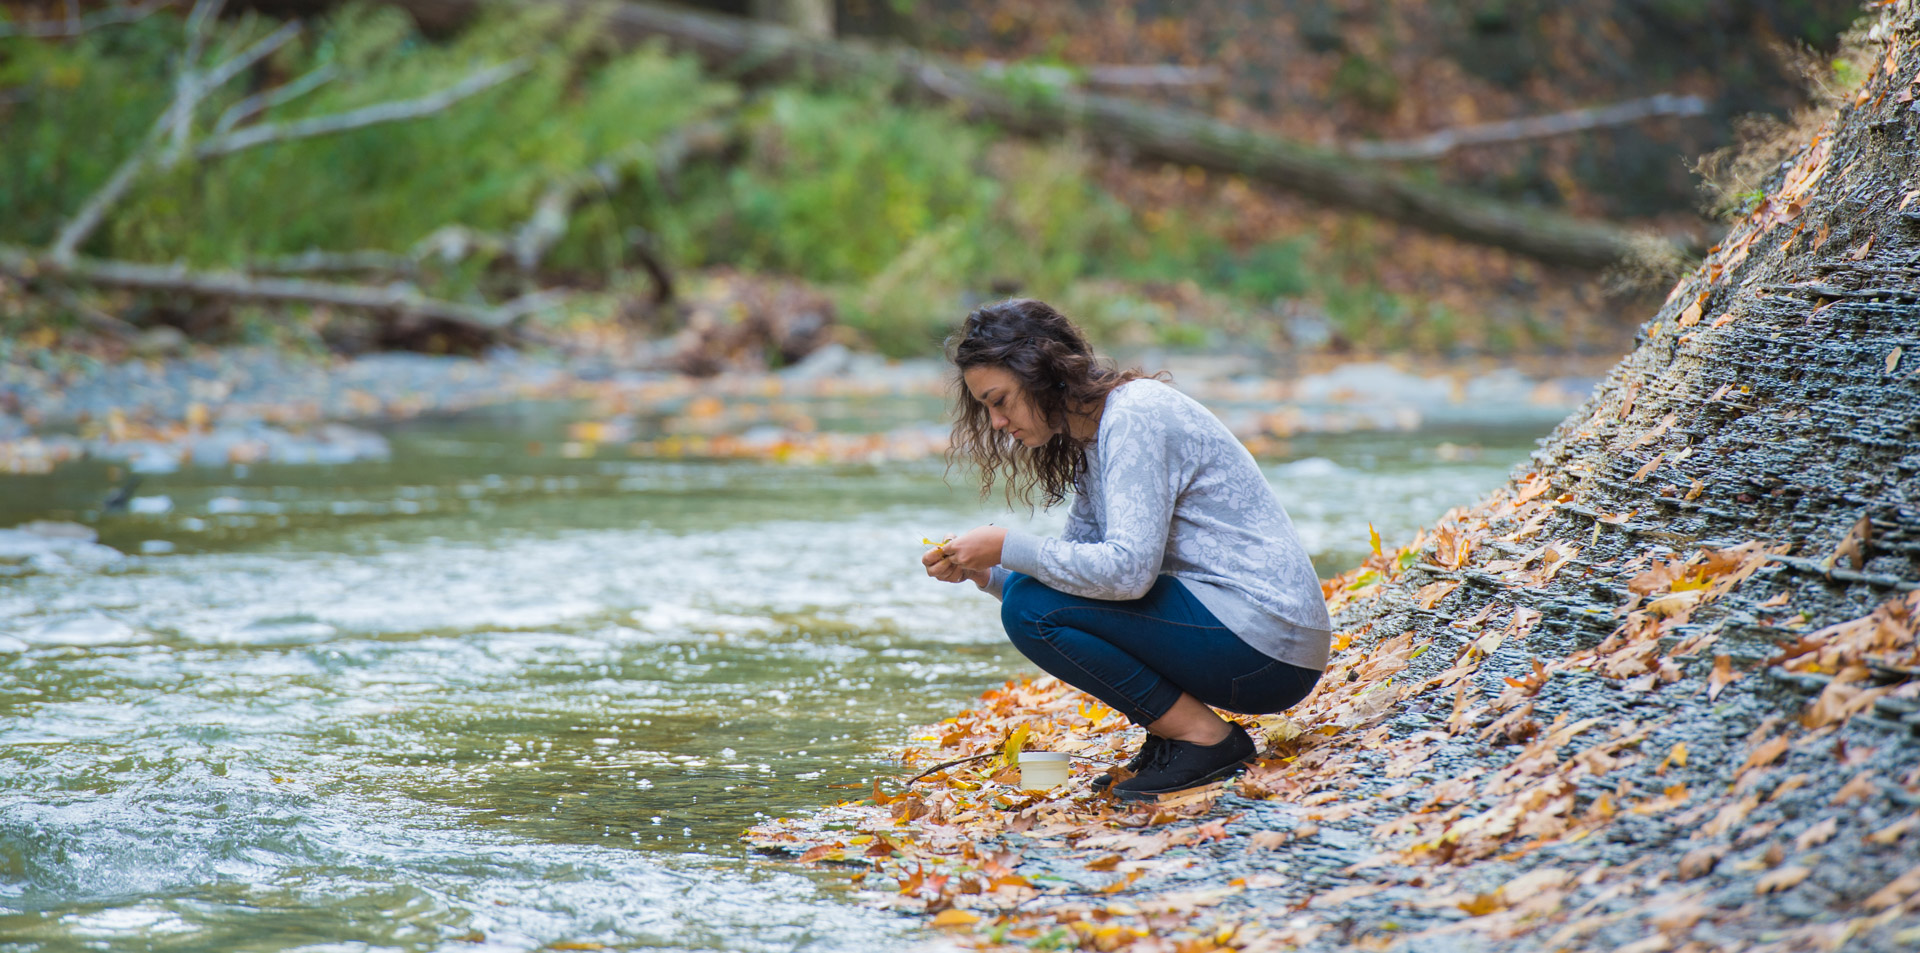 Student crouching beside a creek to collect water samples